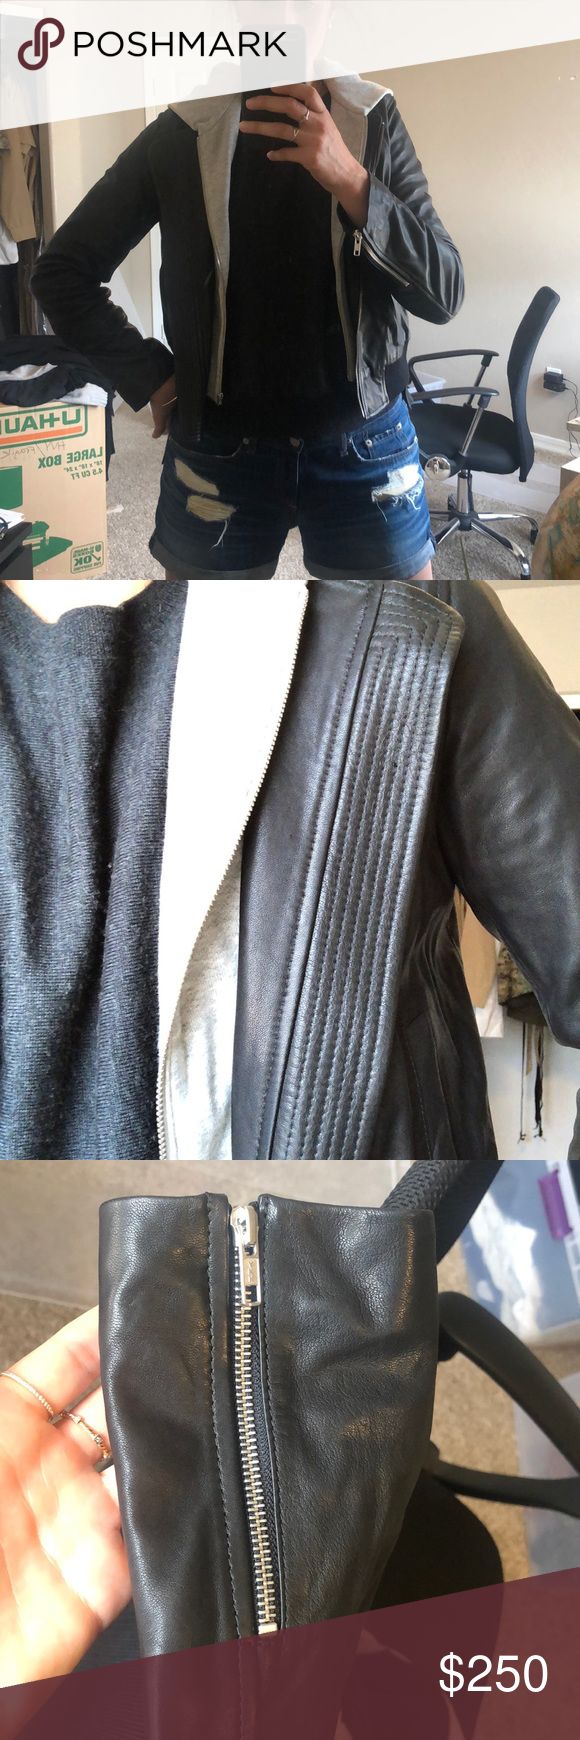 Never Worn ALC Leather Jacket With Hoodie Size 10 Super